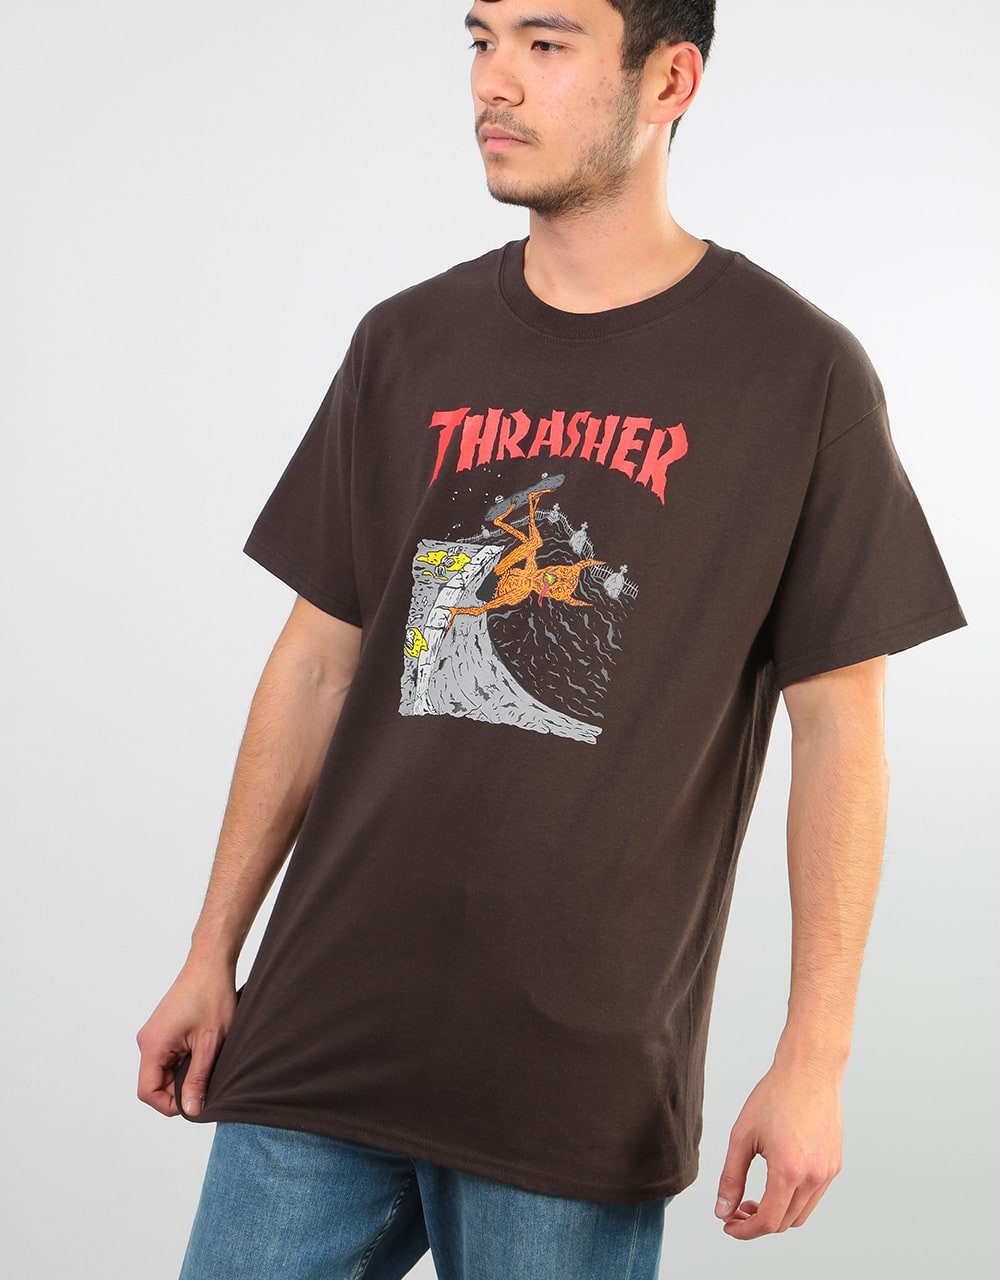 Thrasher Neckface T-Shirt - Brown  836172f495